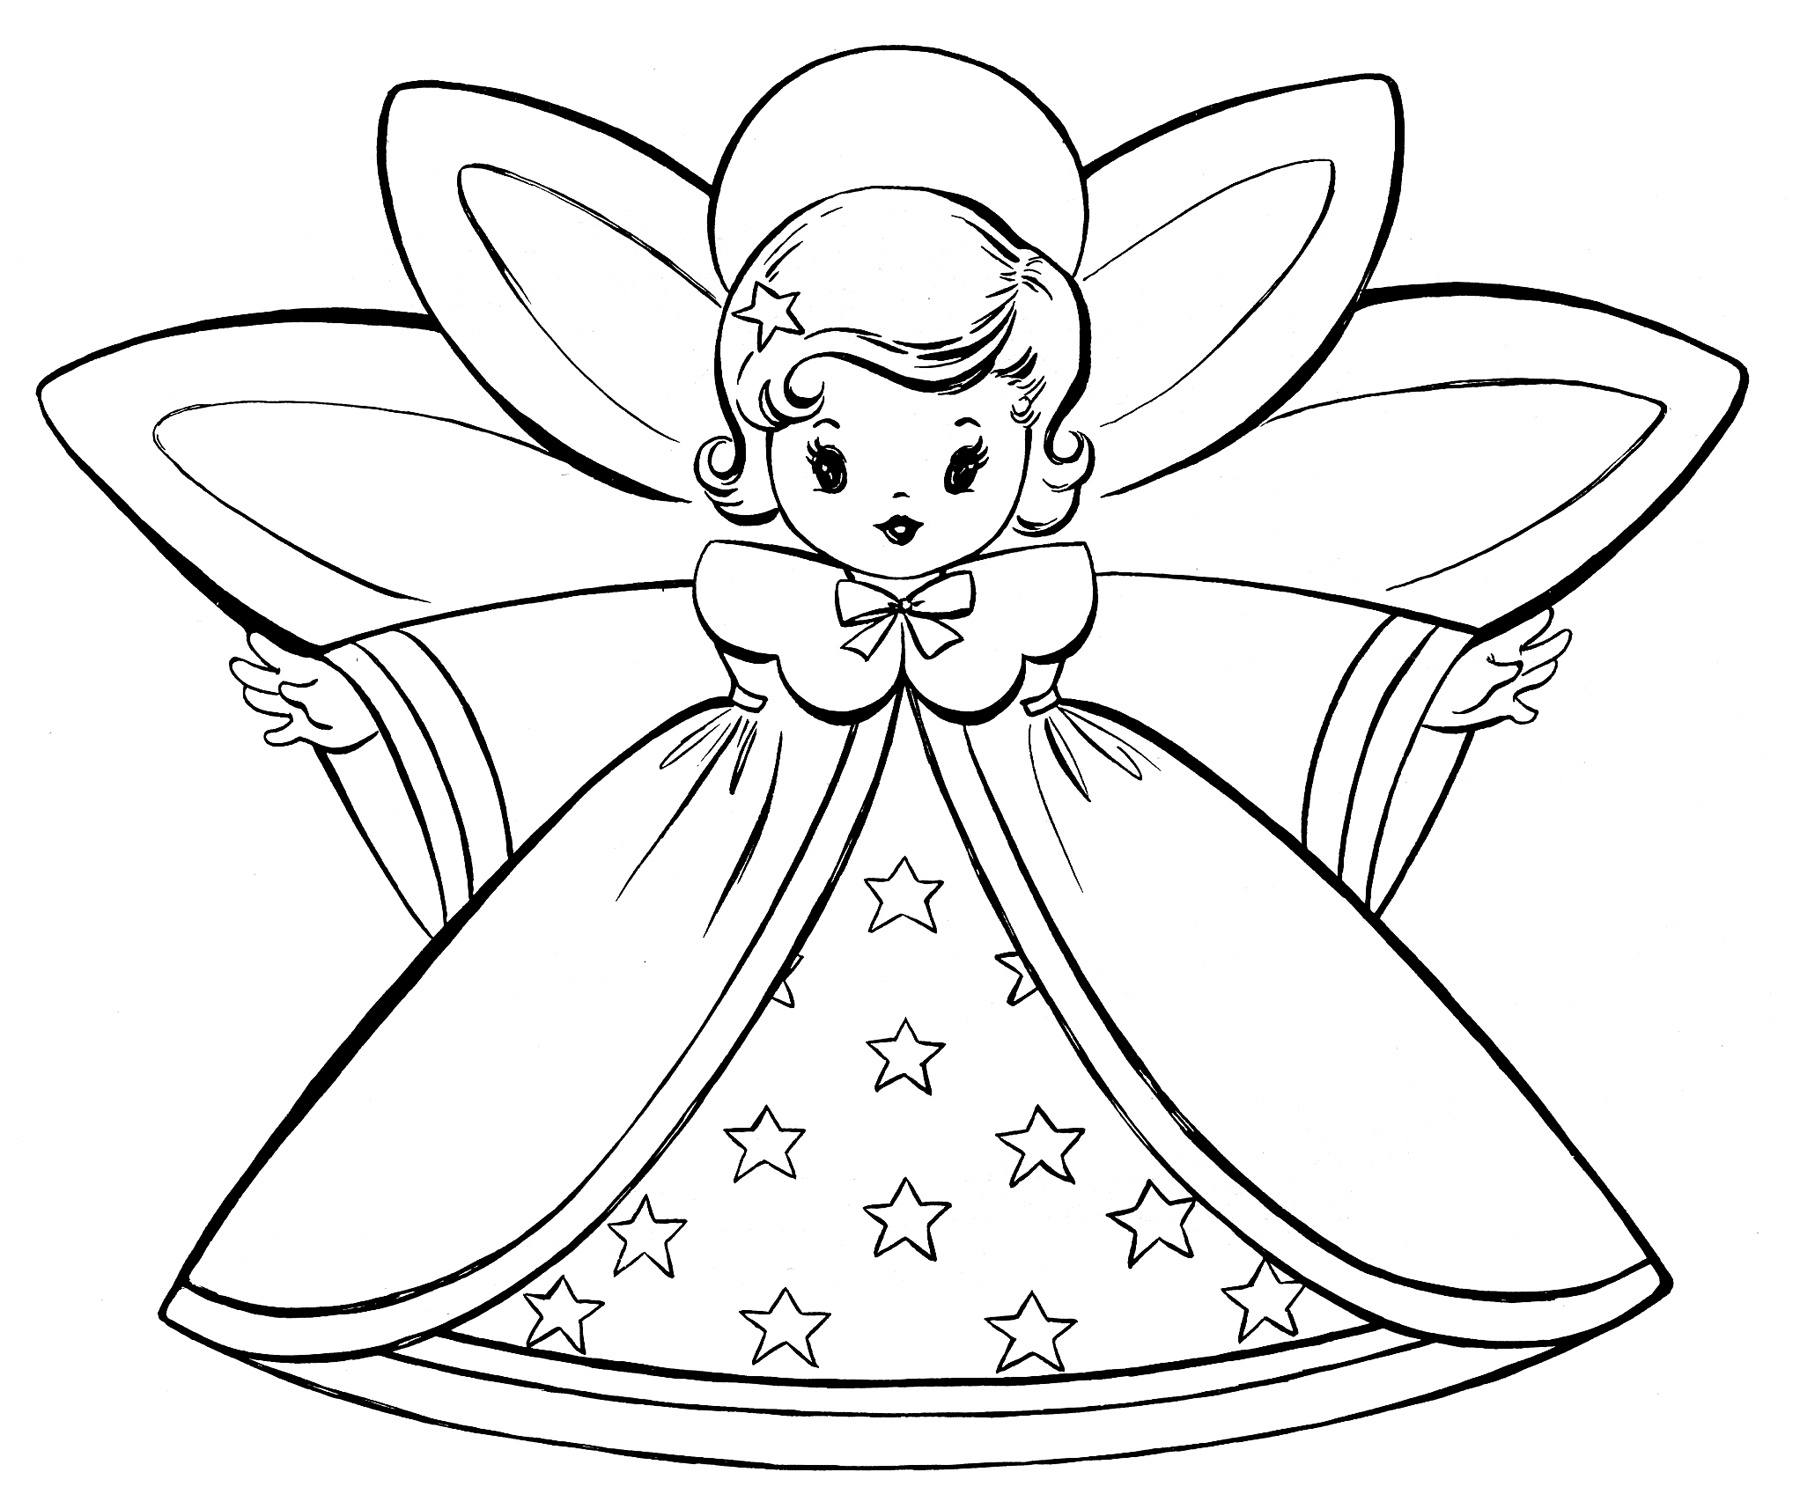 Free Christmas Coloring Pages - Retro Angels - The Graphics Fairy - Free Printable Pictures Of Angels